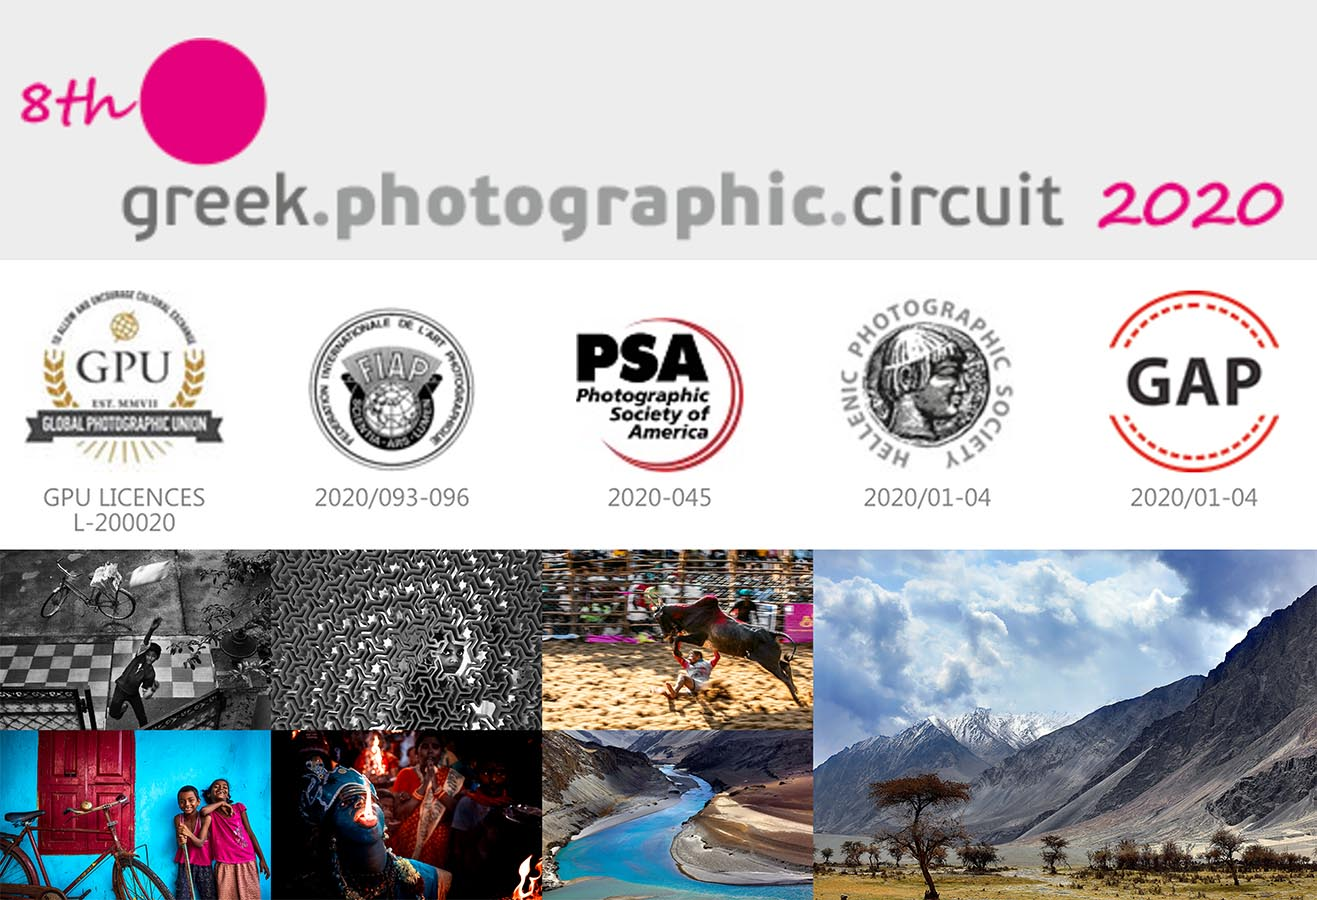 8th Greek Photographic Circuit-2020